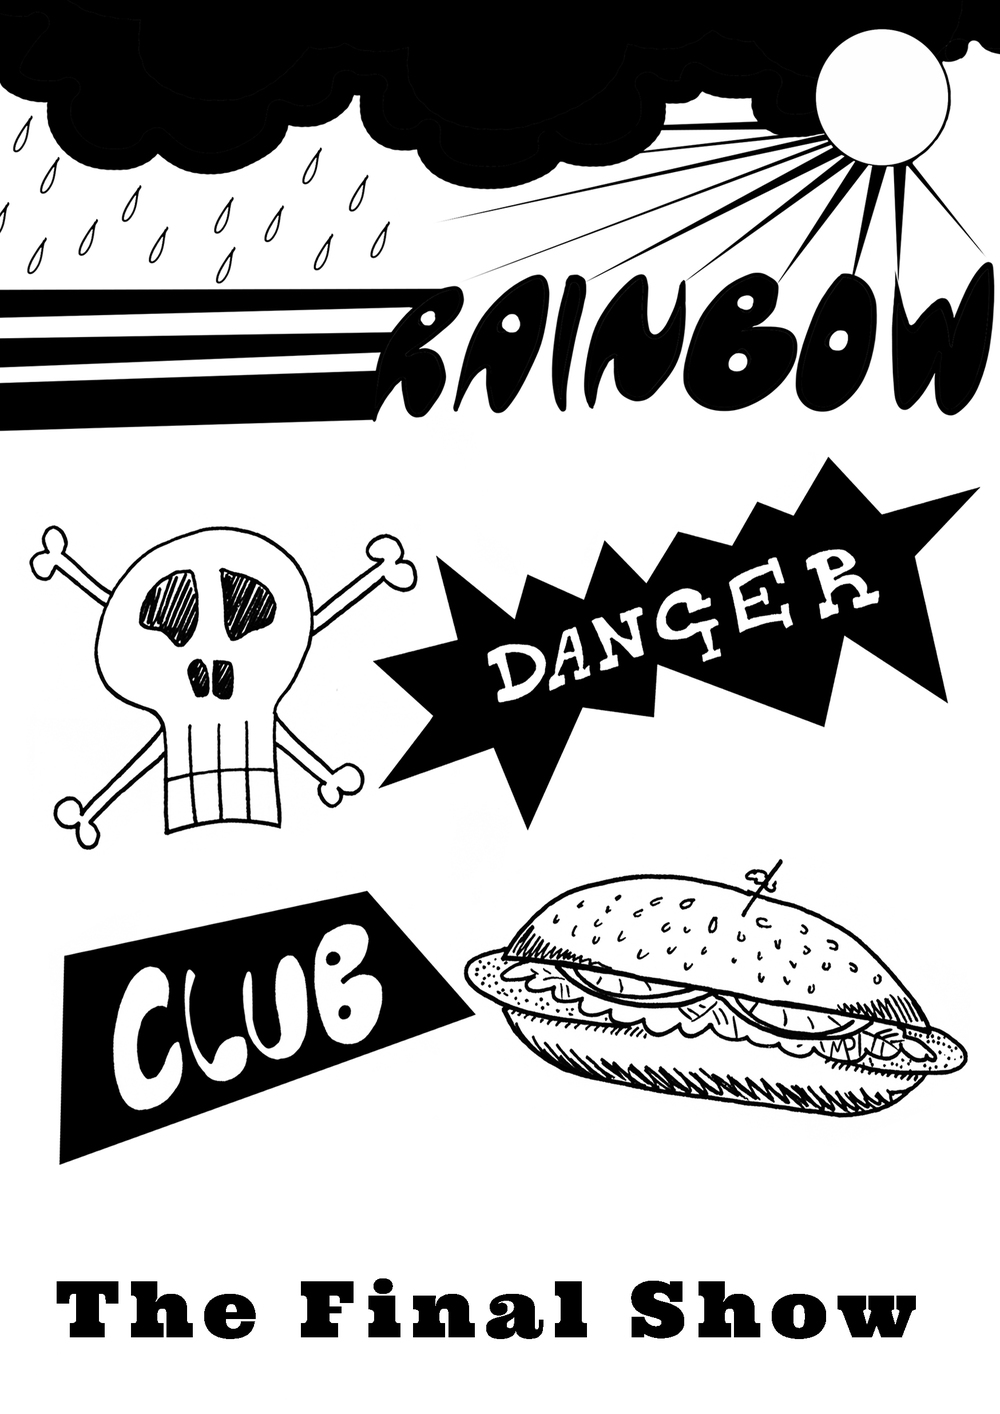 21 Rainbow Danger Club the final show.jpg